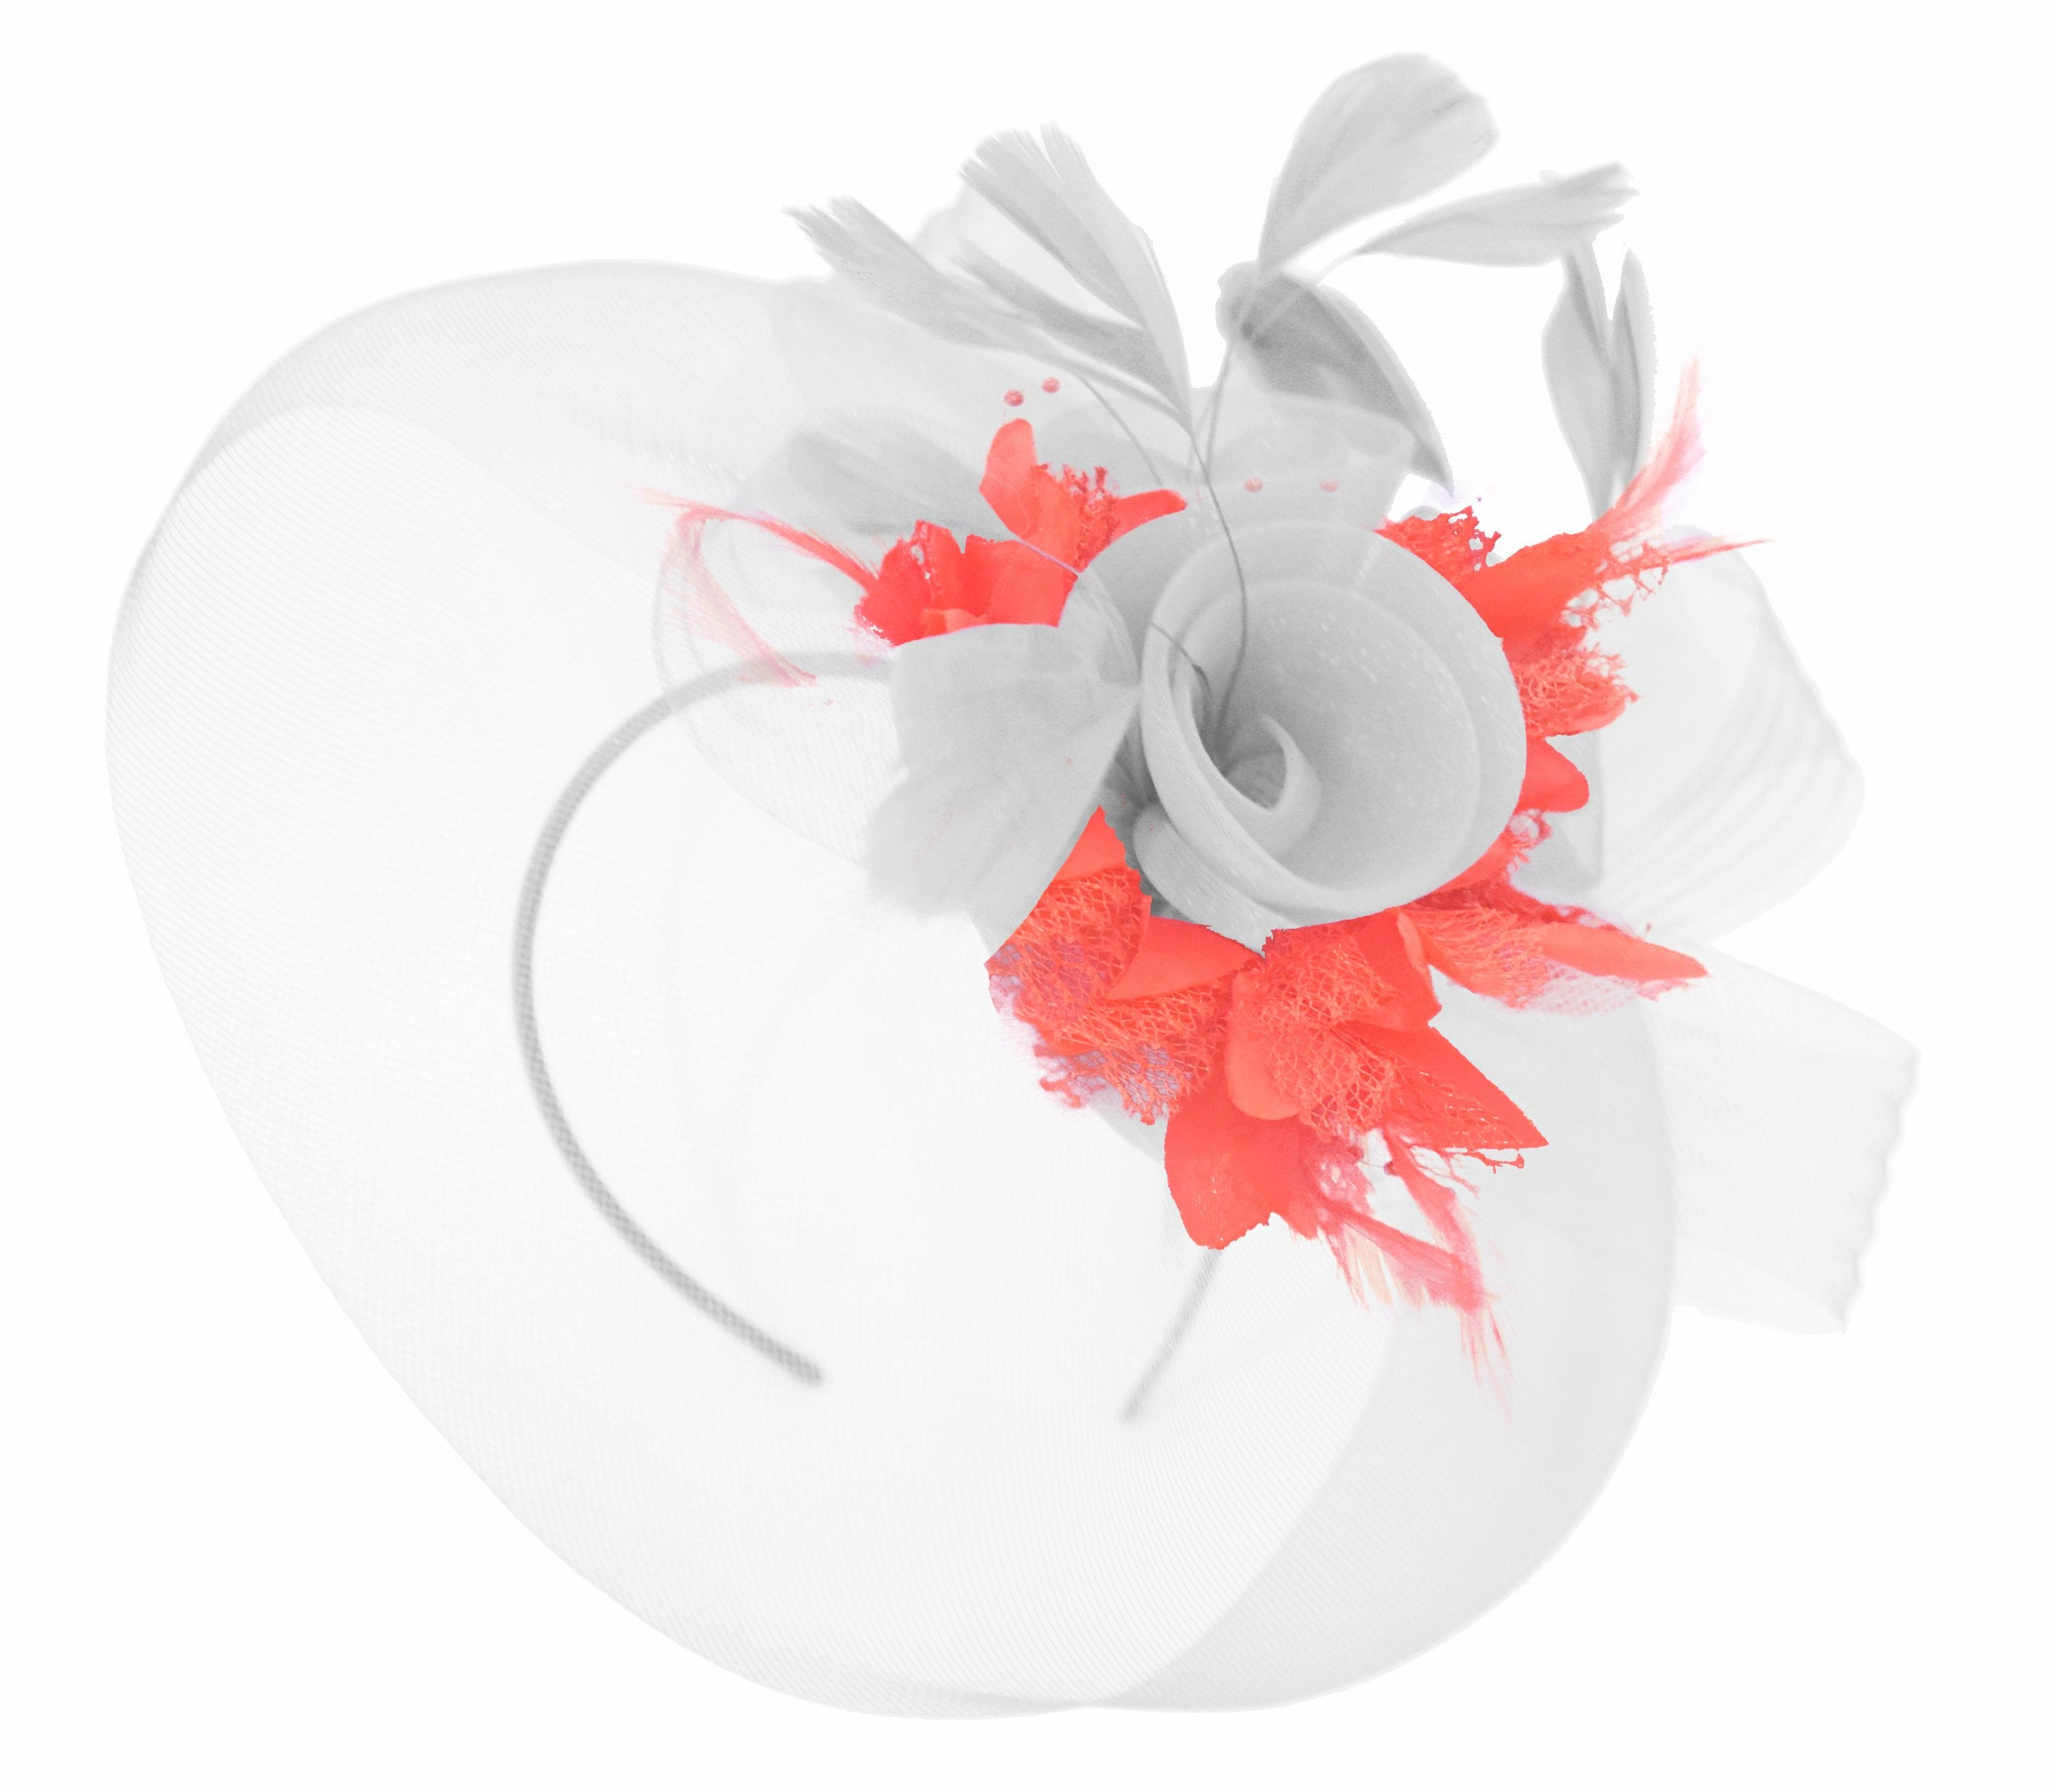 Caprilite White and Coral Fascinator on Headband Veil UK Wedding Ascot Races Hatinator